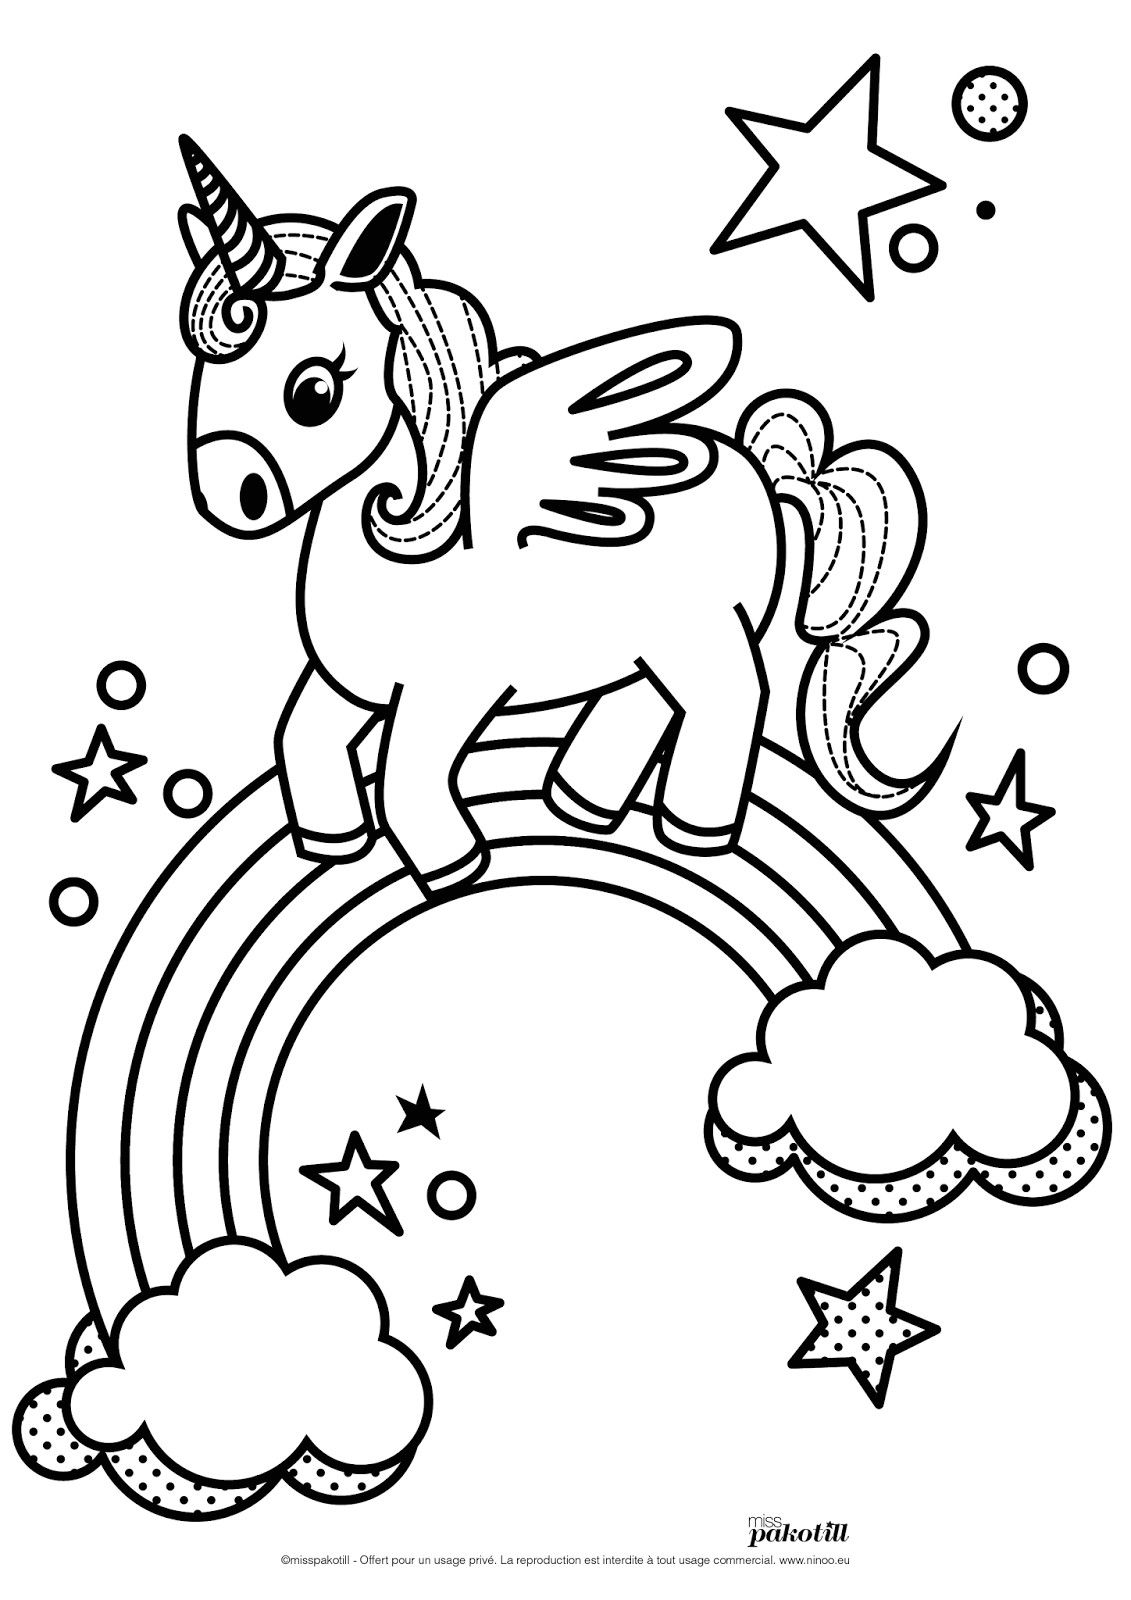 Coloriage Unicorn.Coloriage De Licorne Kawaii Coloriage Licorne Colorier Dessin